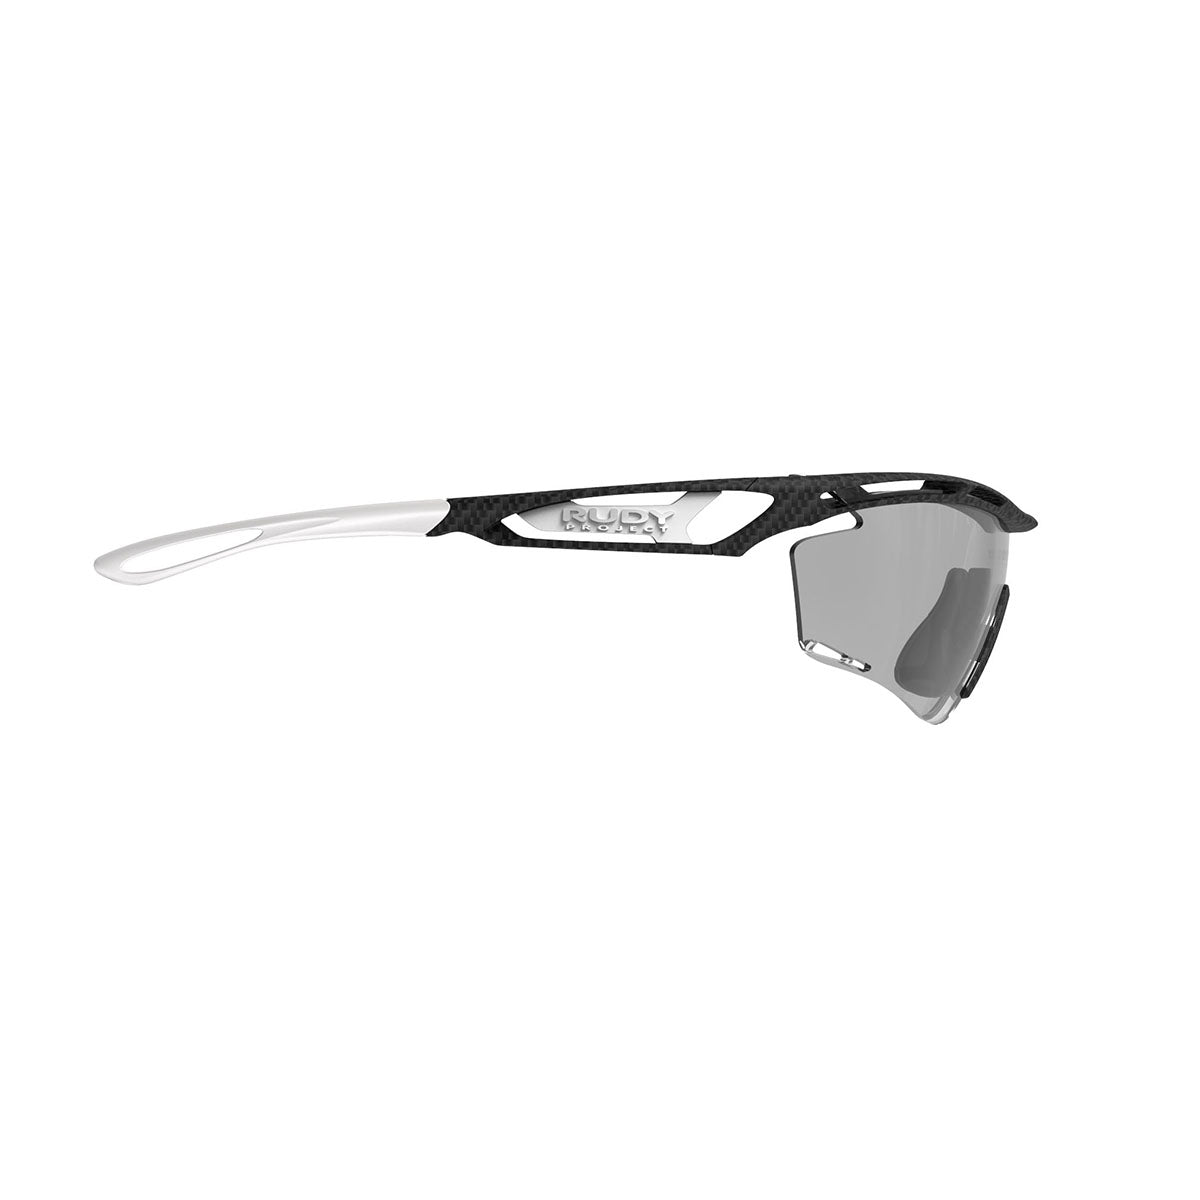 Rudy Project - Tralyx - frame color: Carbonium - lens color: ImpactX-2 Photochromic Clear to Laser Black - photo angle: Side Variant Hover Image